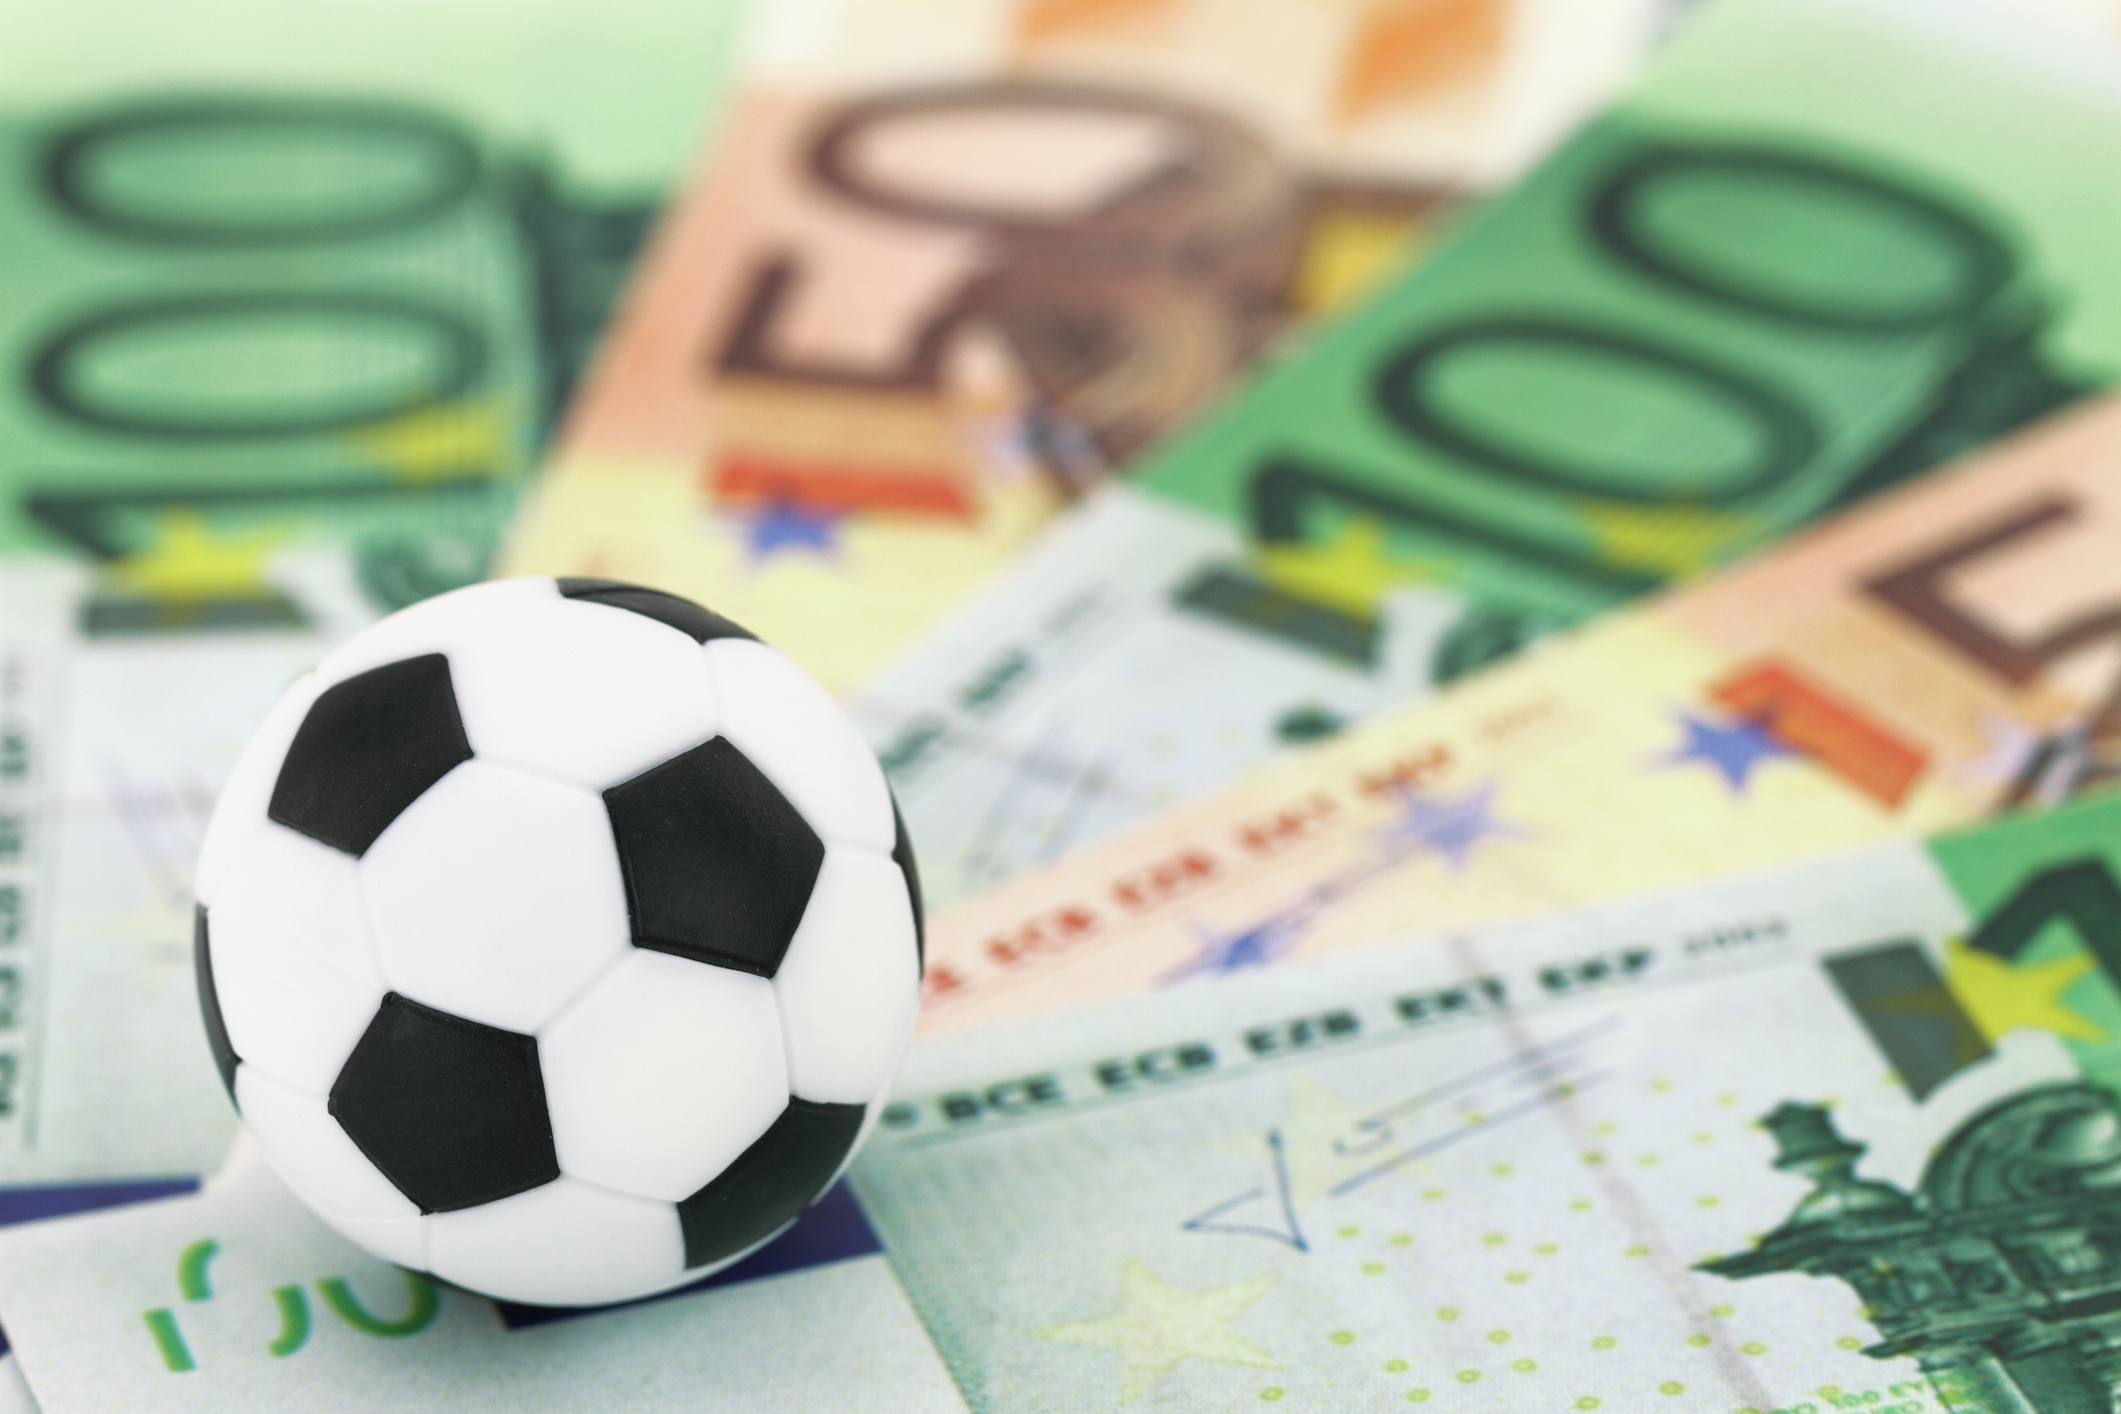 Close-up of a toy soccer ball atop European money bills